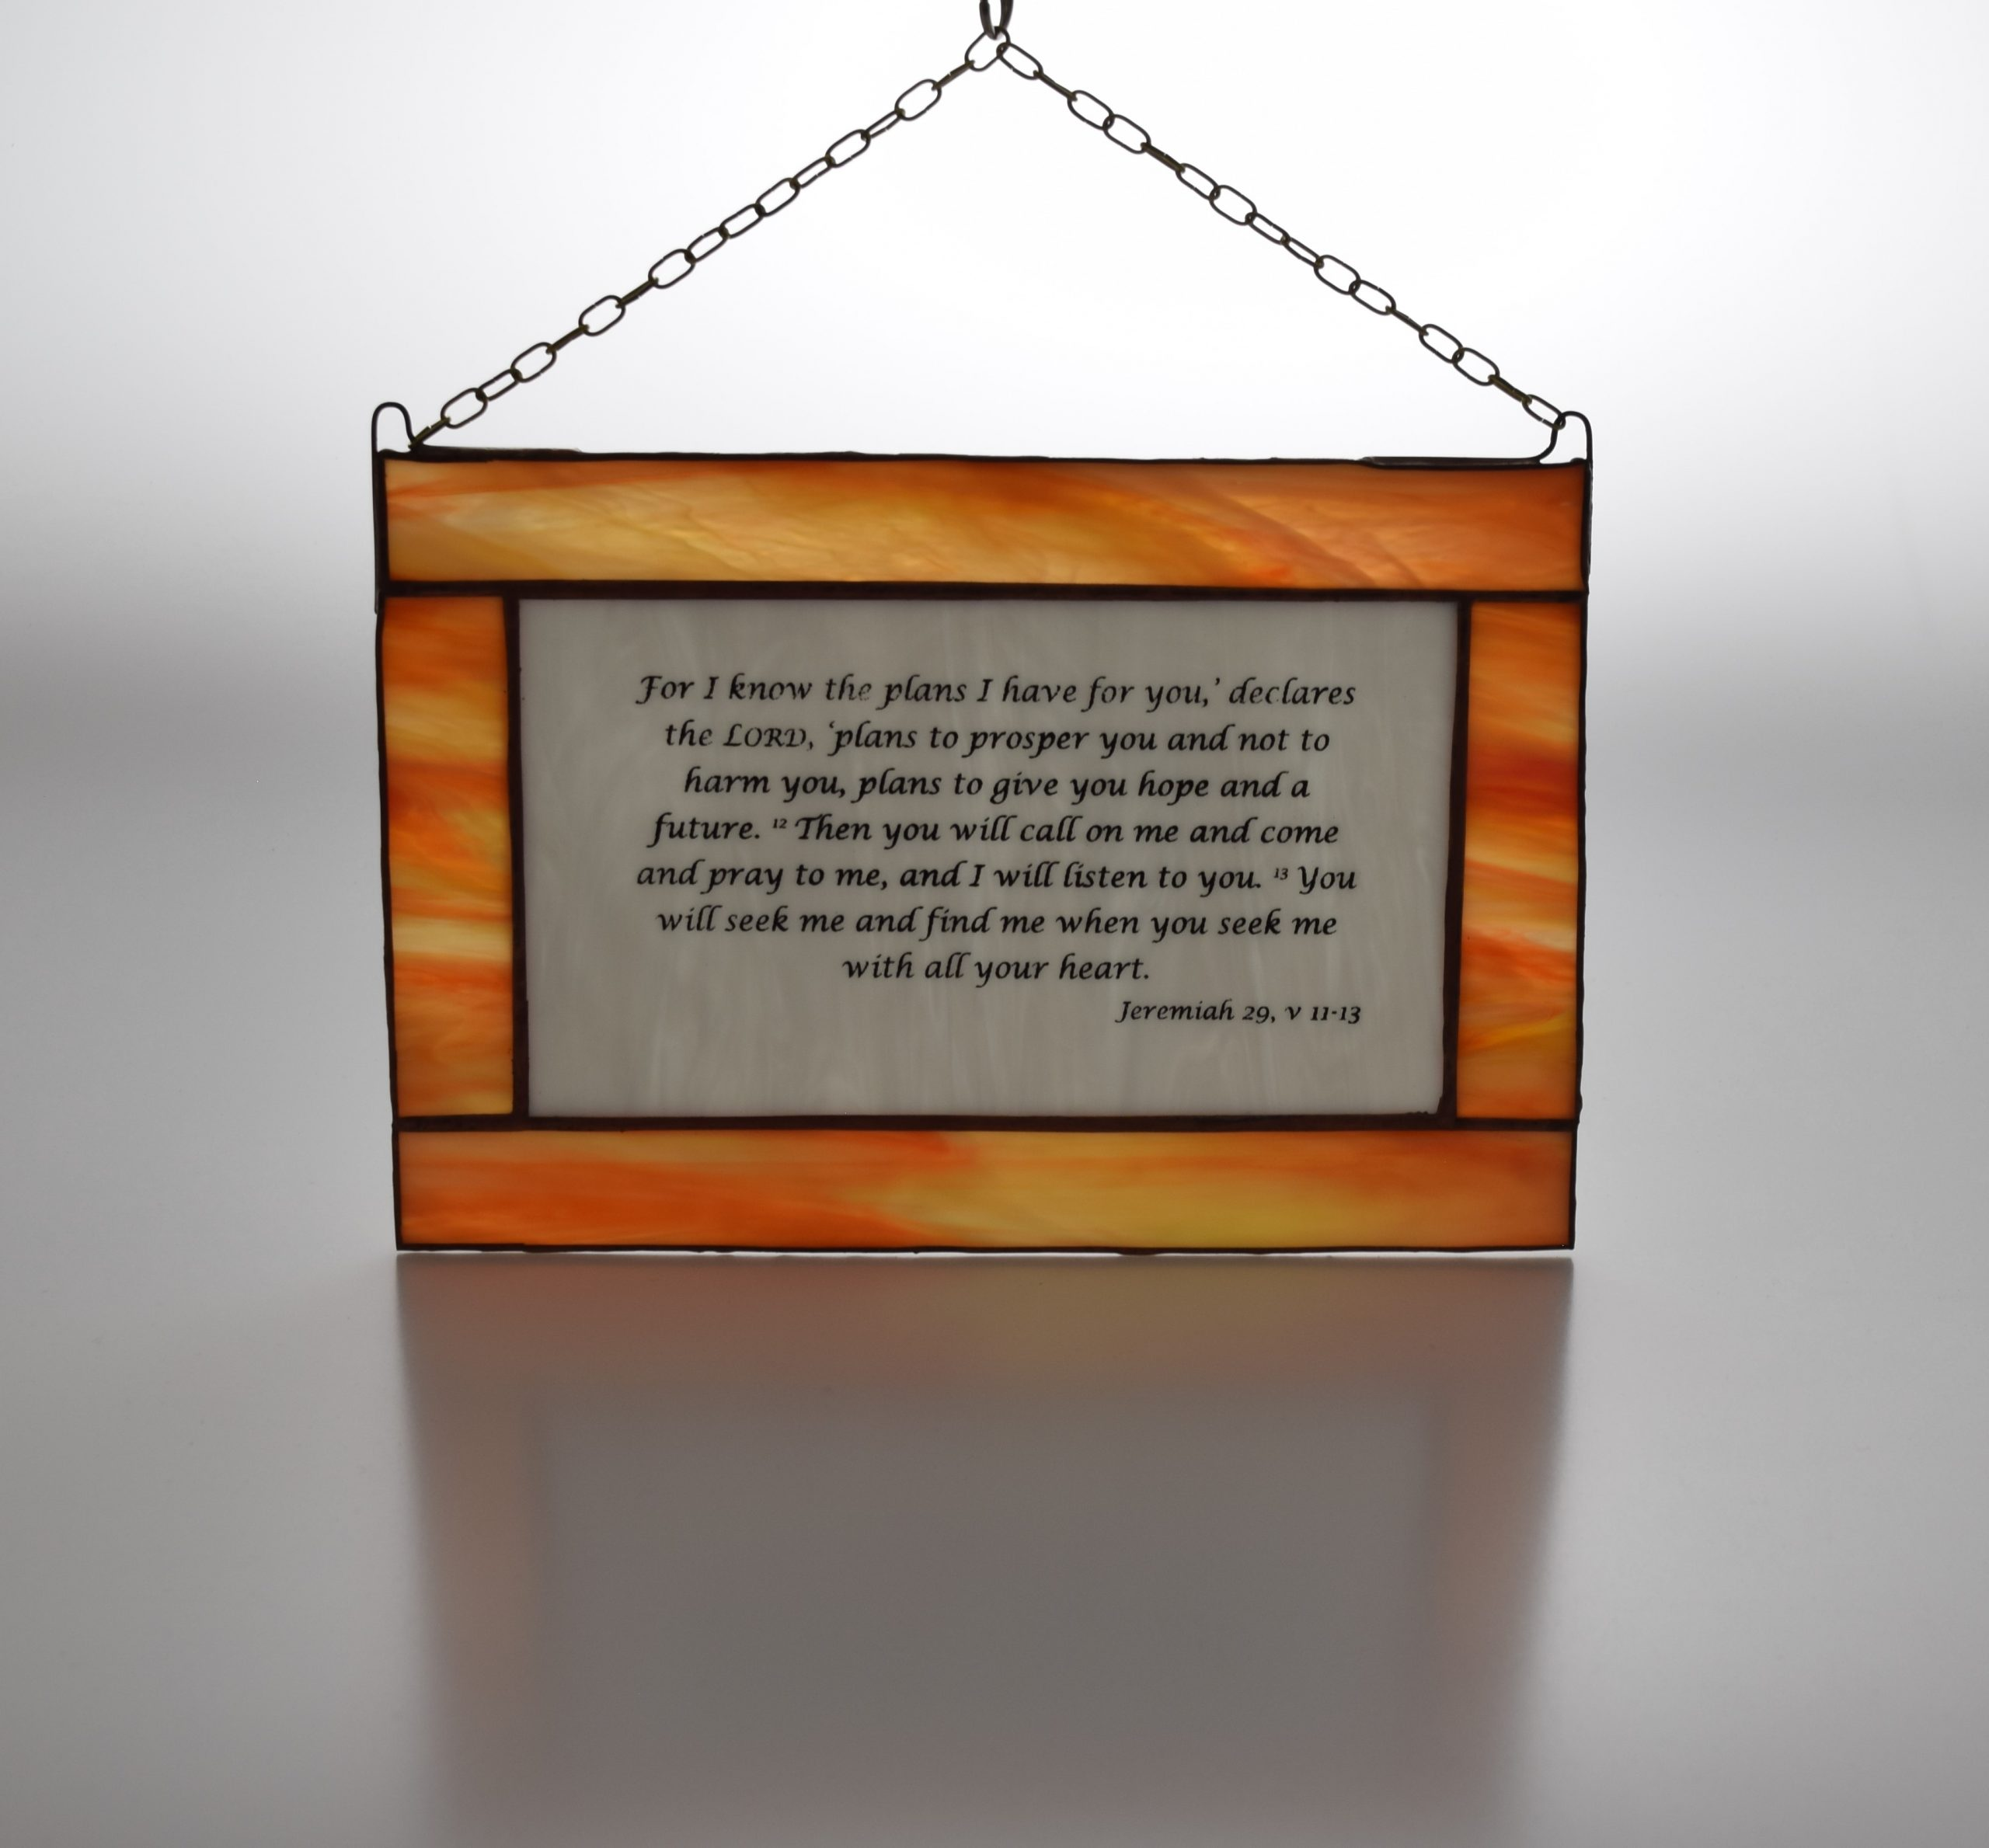 An attractive stained glass panel bearing the words from Jeremiah 29, verses 11 - 13 on white glass, with a glass border in shades of orange and a hanging chain.